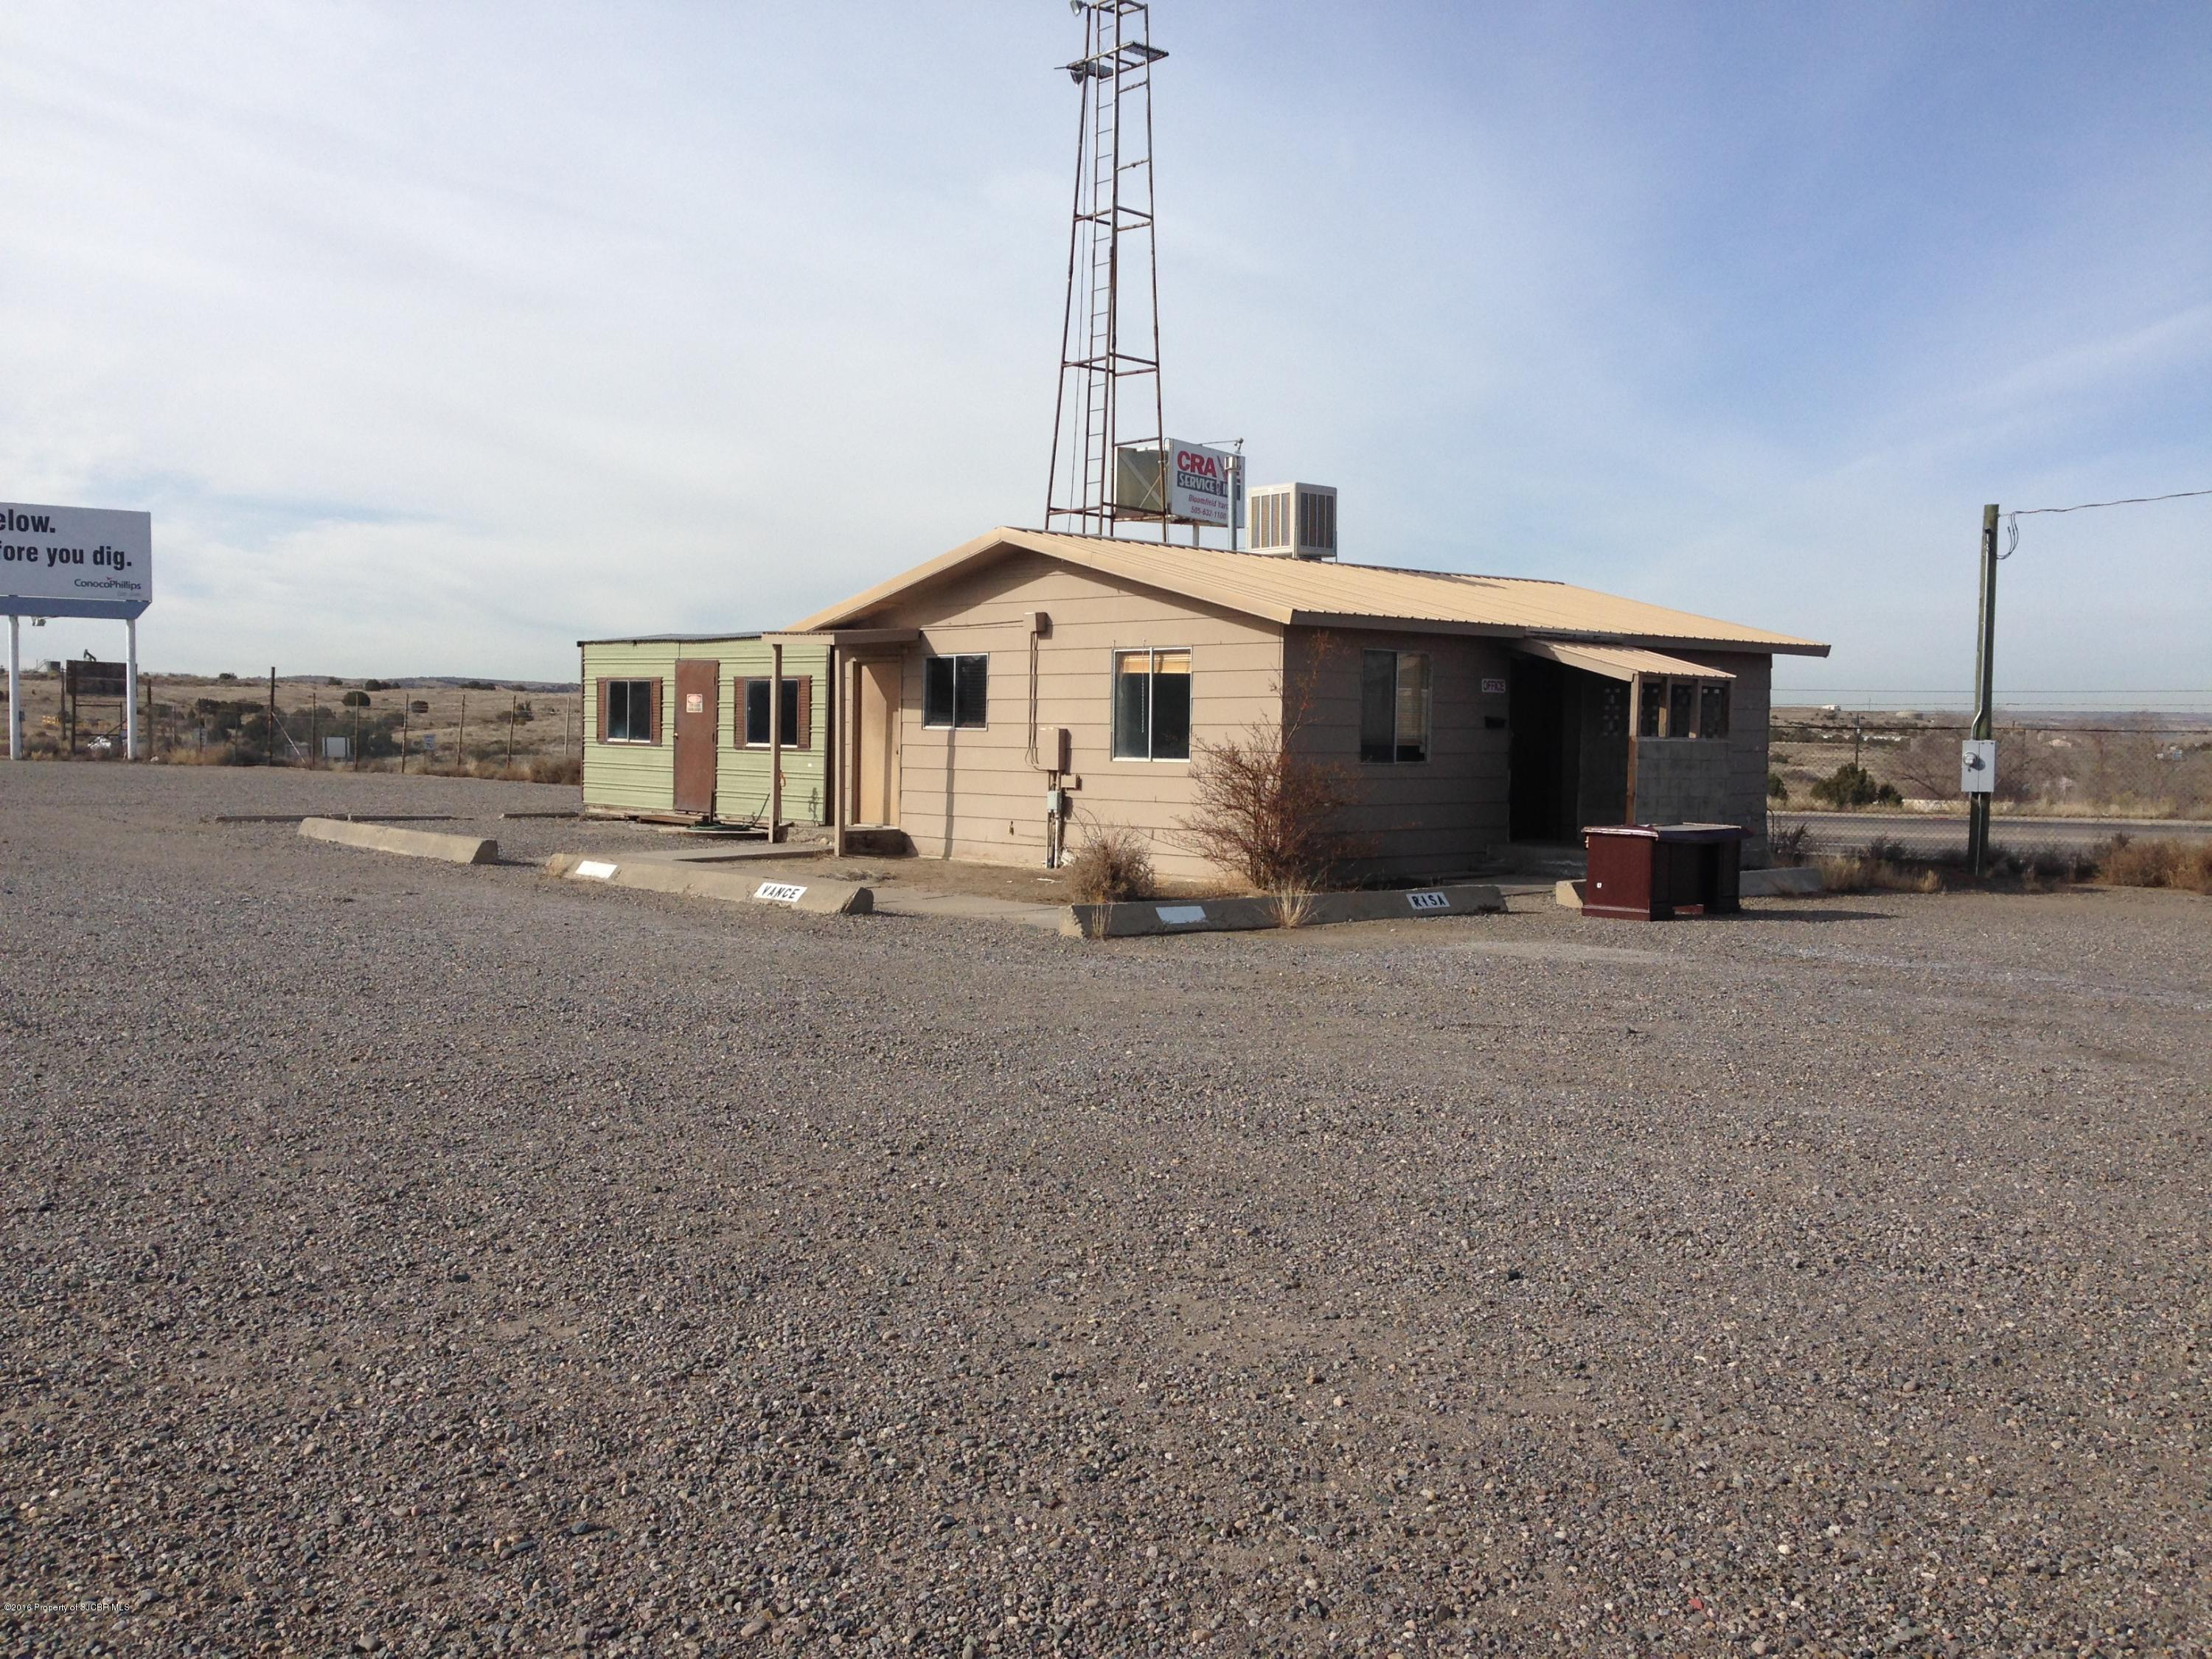 primary photo for 2130 S BLOOMFIELD Boulevard, BLOOMFIELD, NM 87413, US